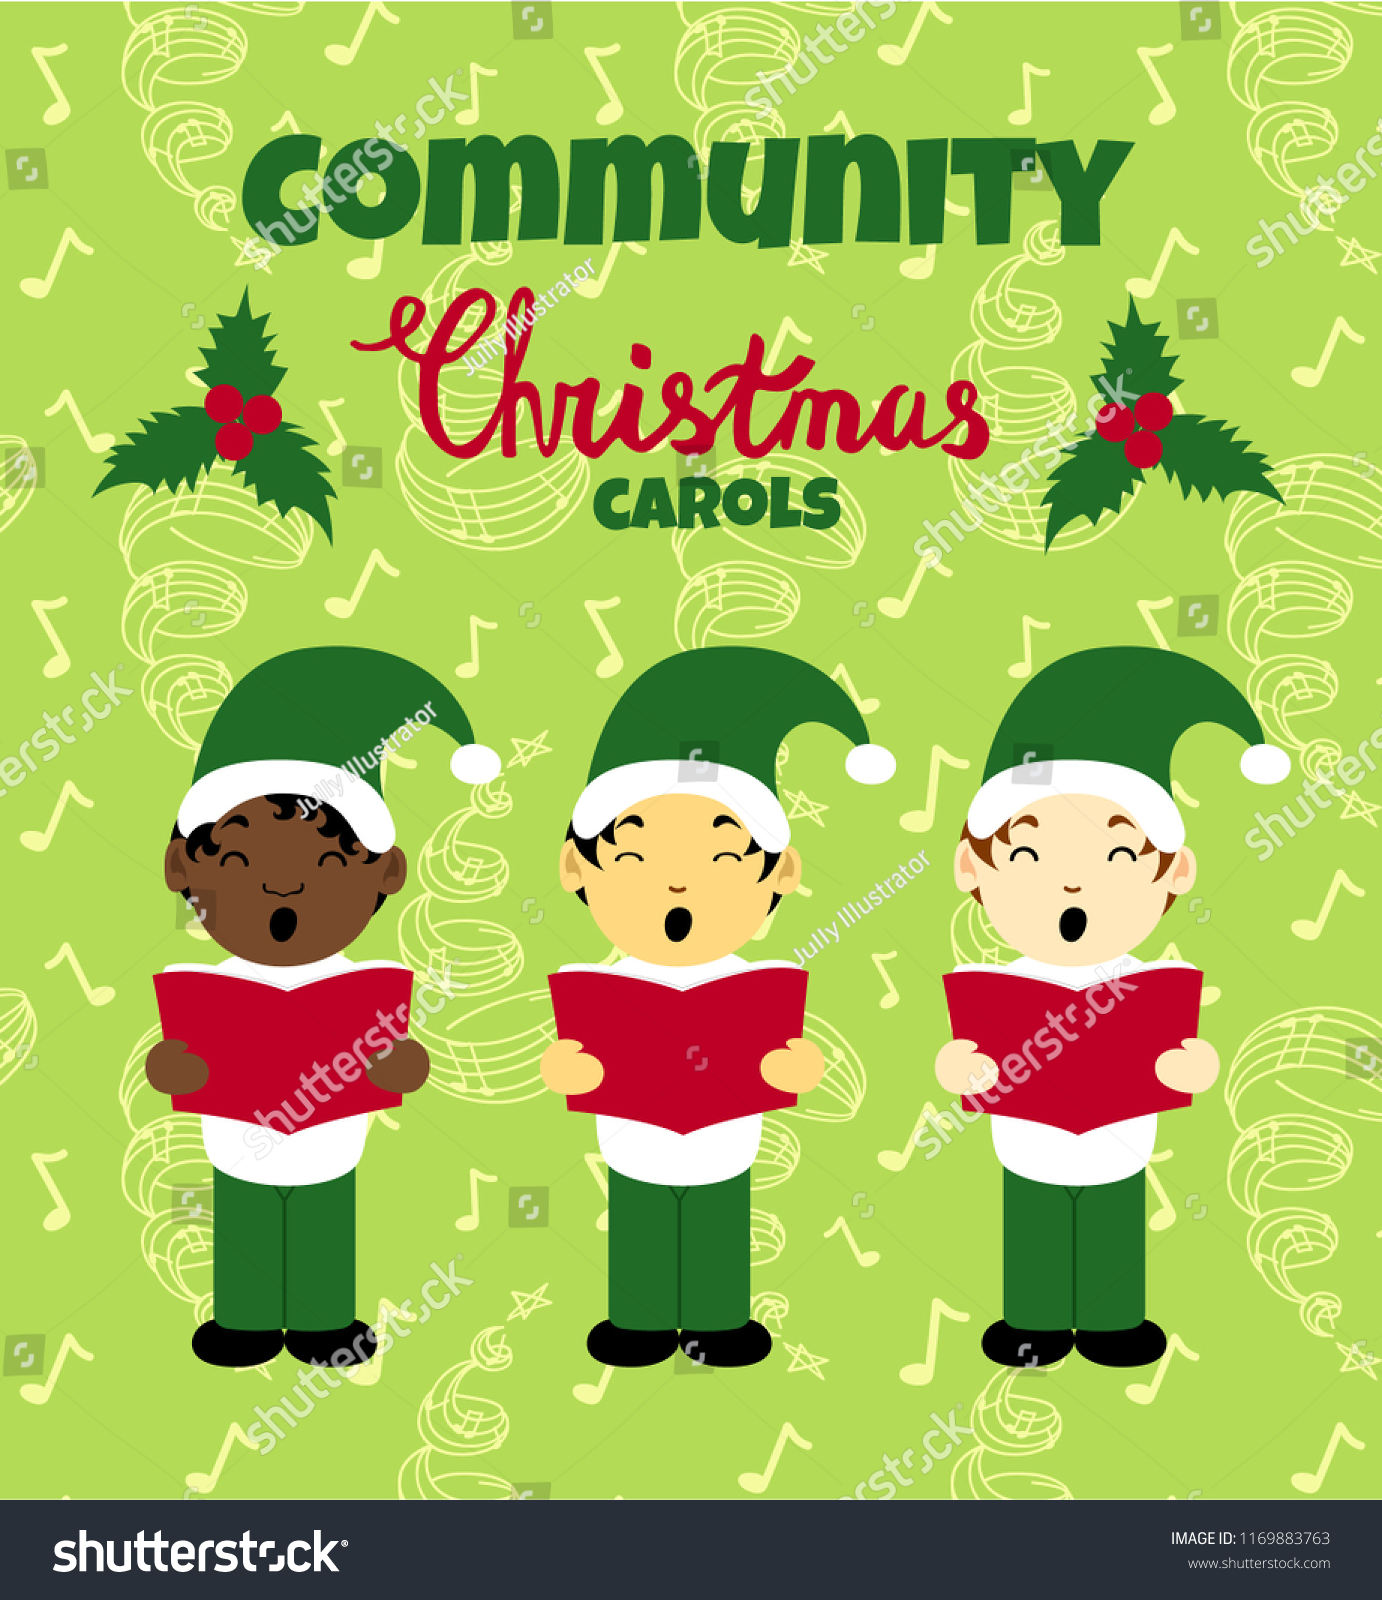 Community Christmas Carols Poster Caroling Multinational Stock ...